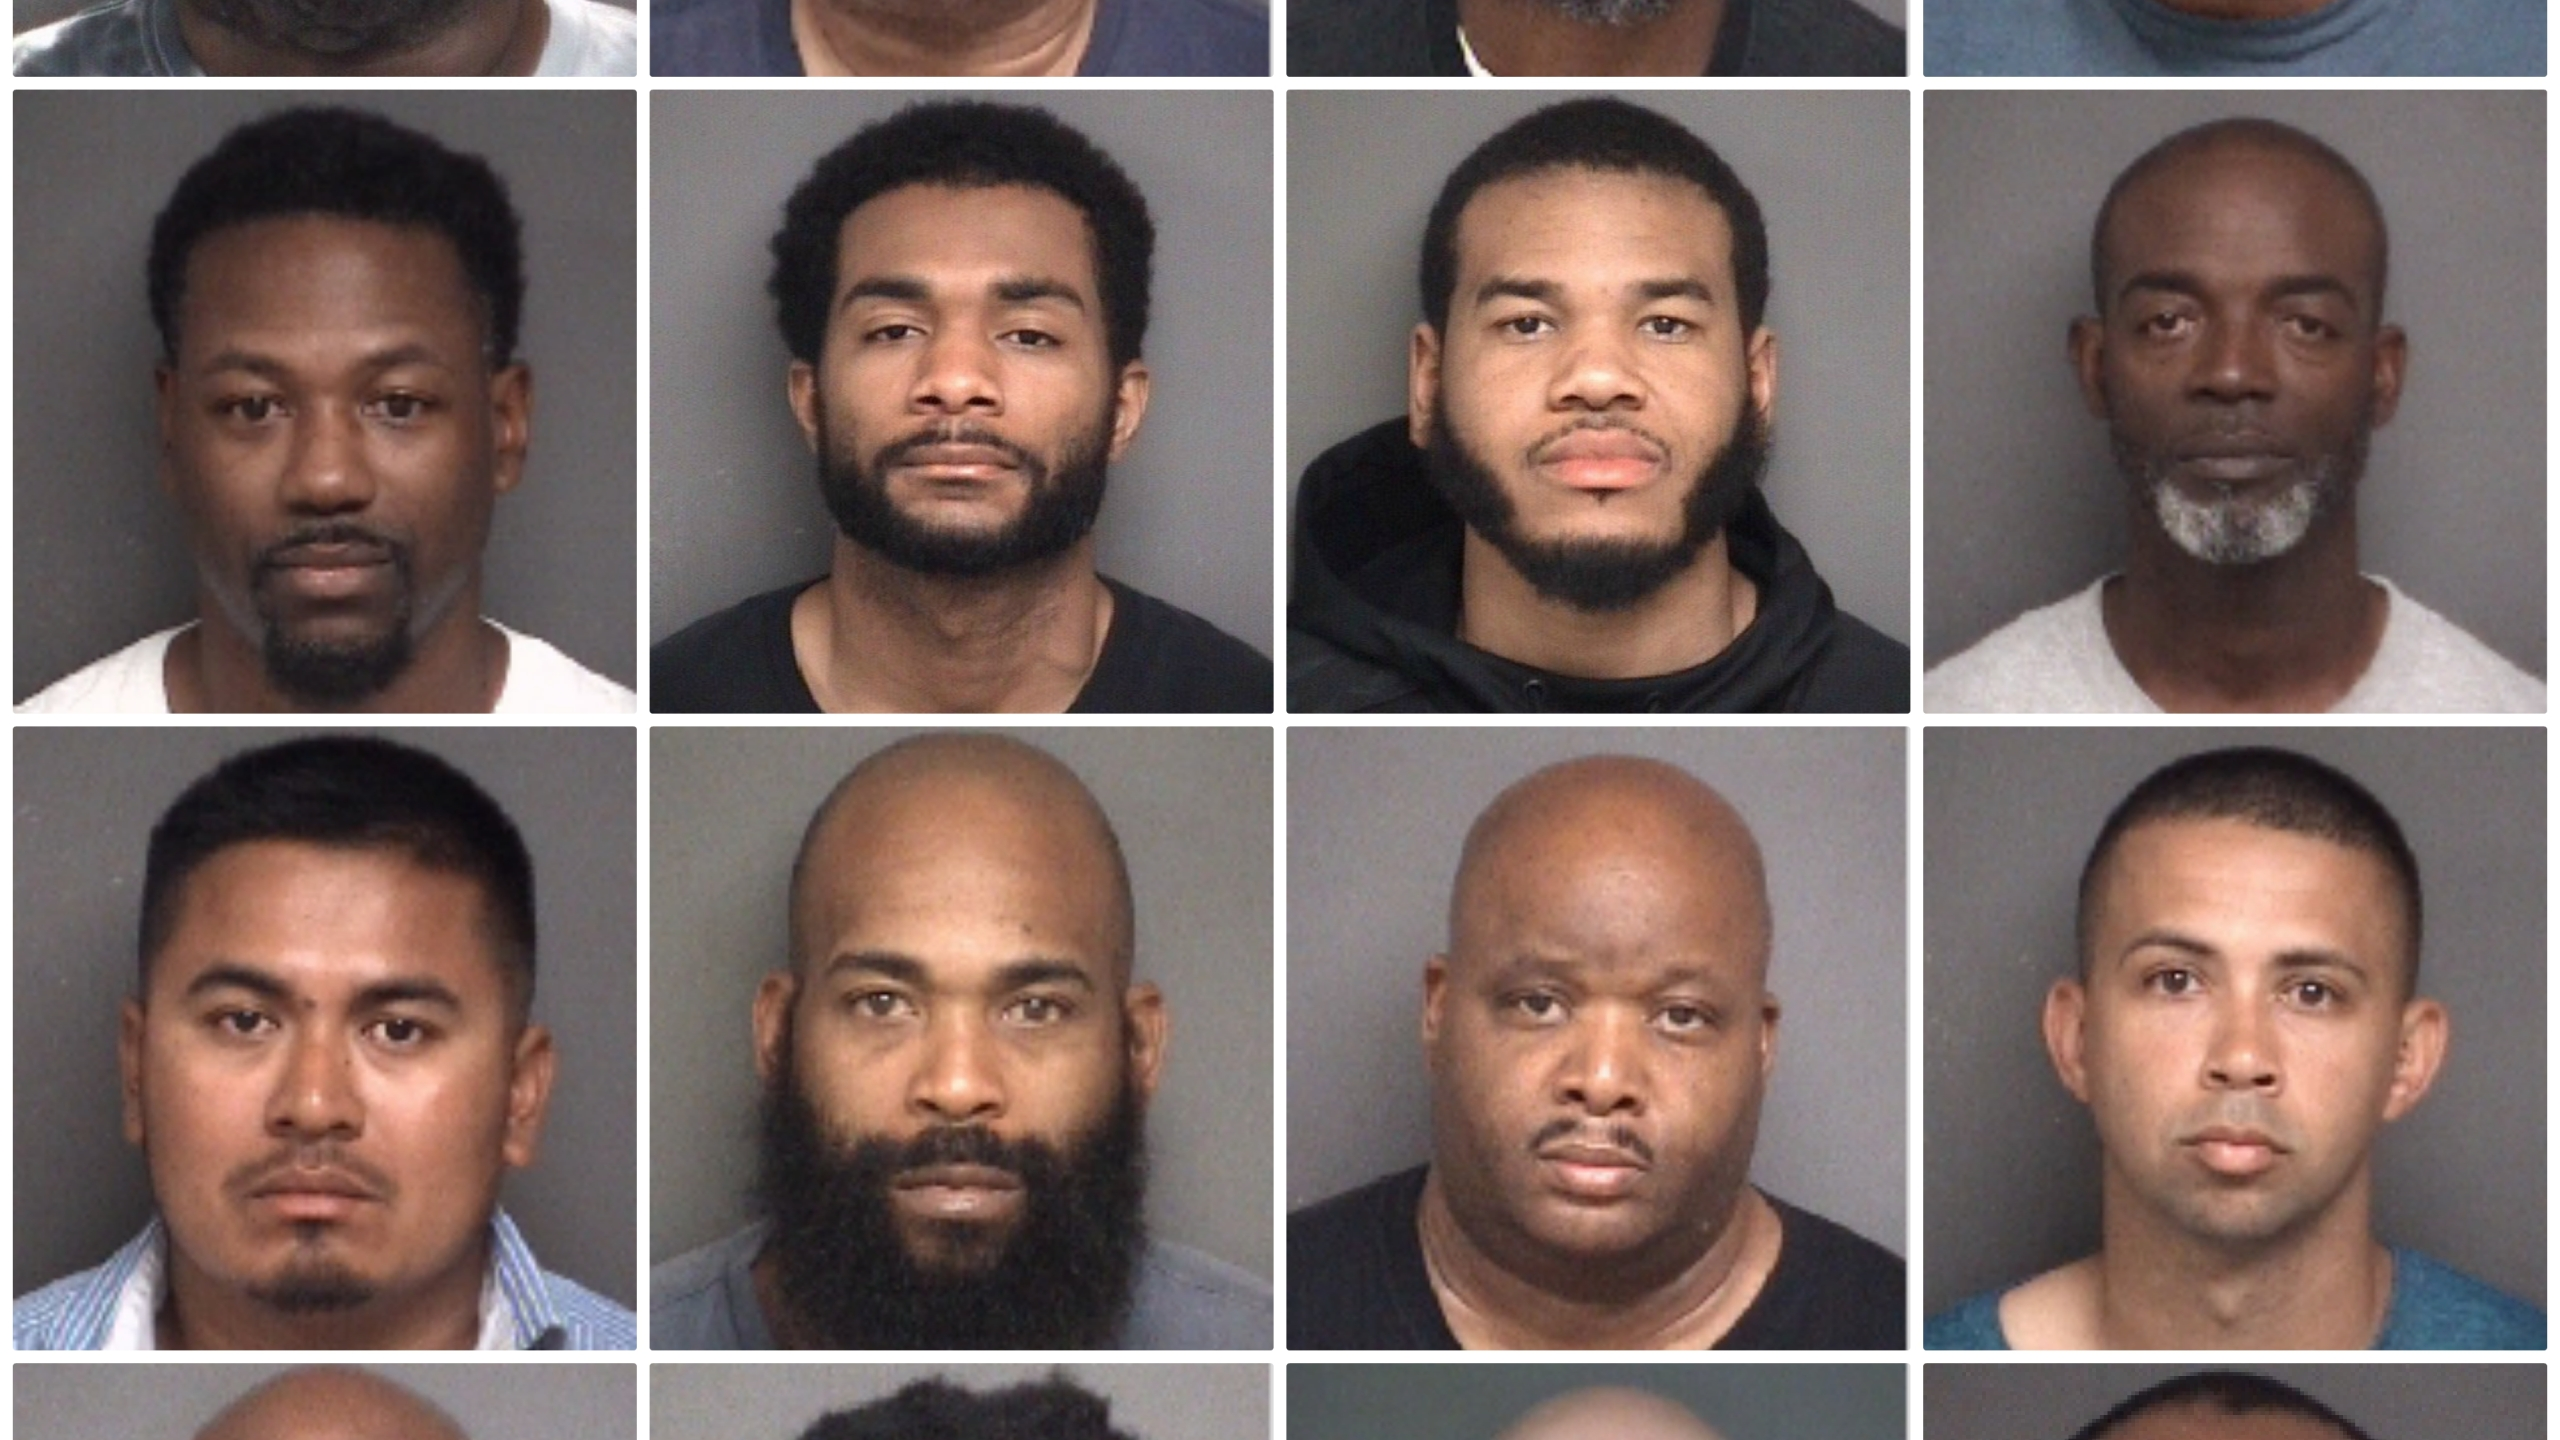 Pitt Co. Prostitution Suspects April 18, 2019